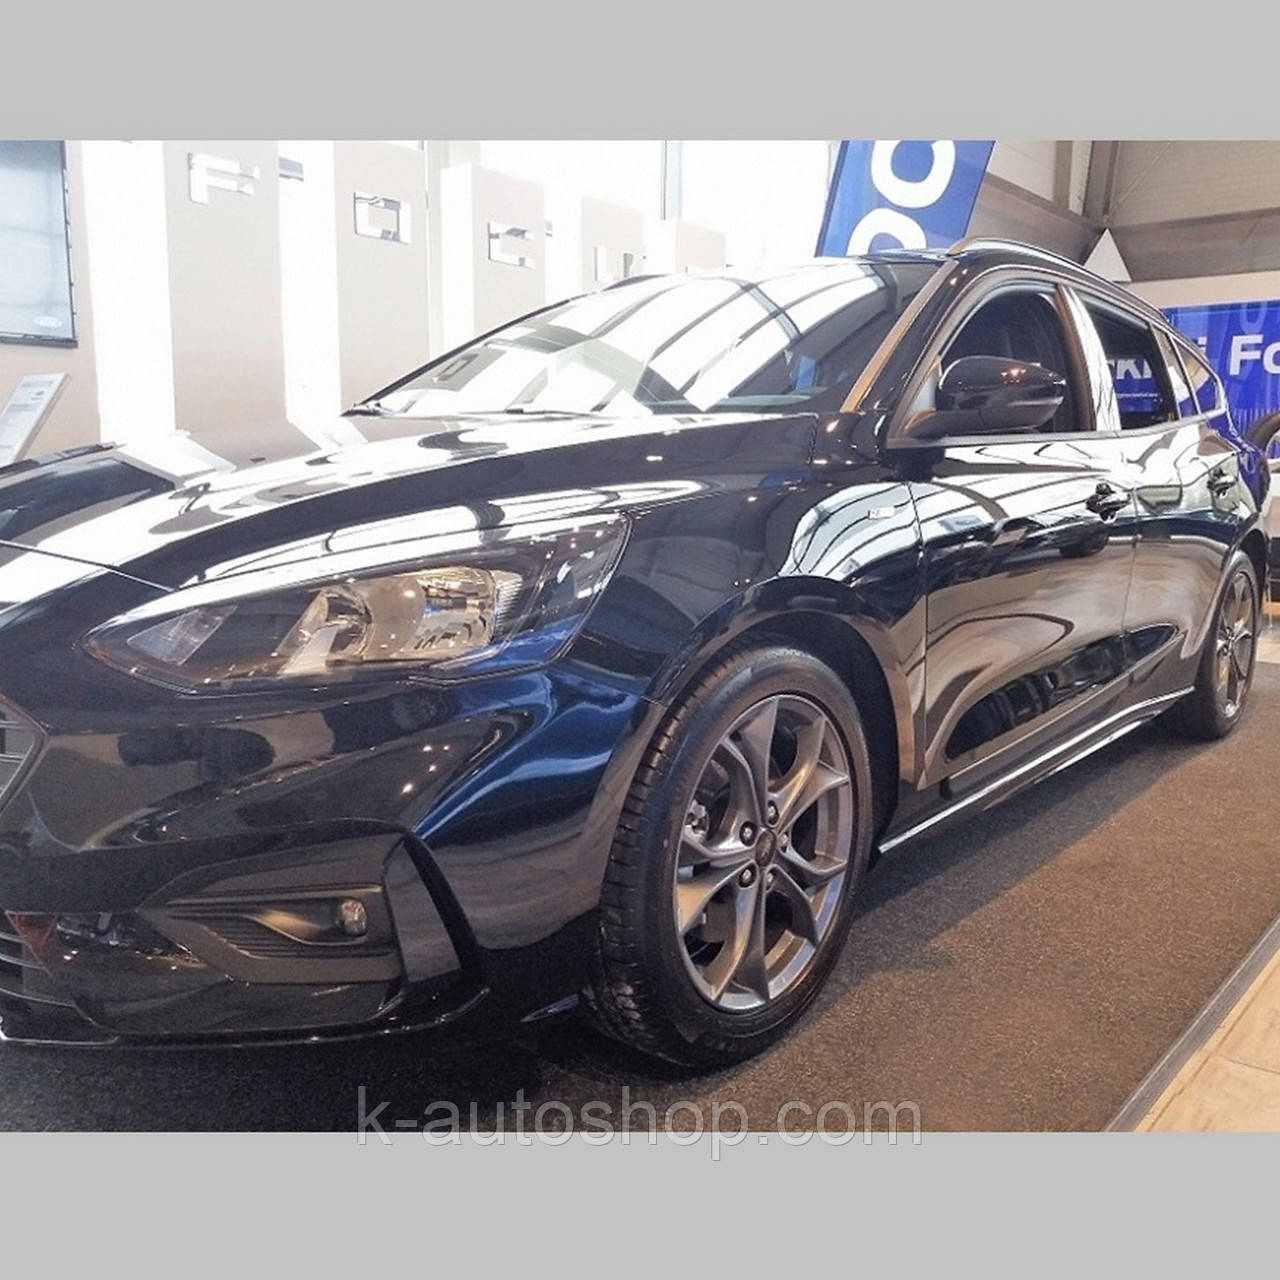 Молдинги на двері для Ford Focus Sedan 4Dr, Tourer Mk4 2018>